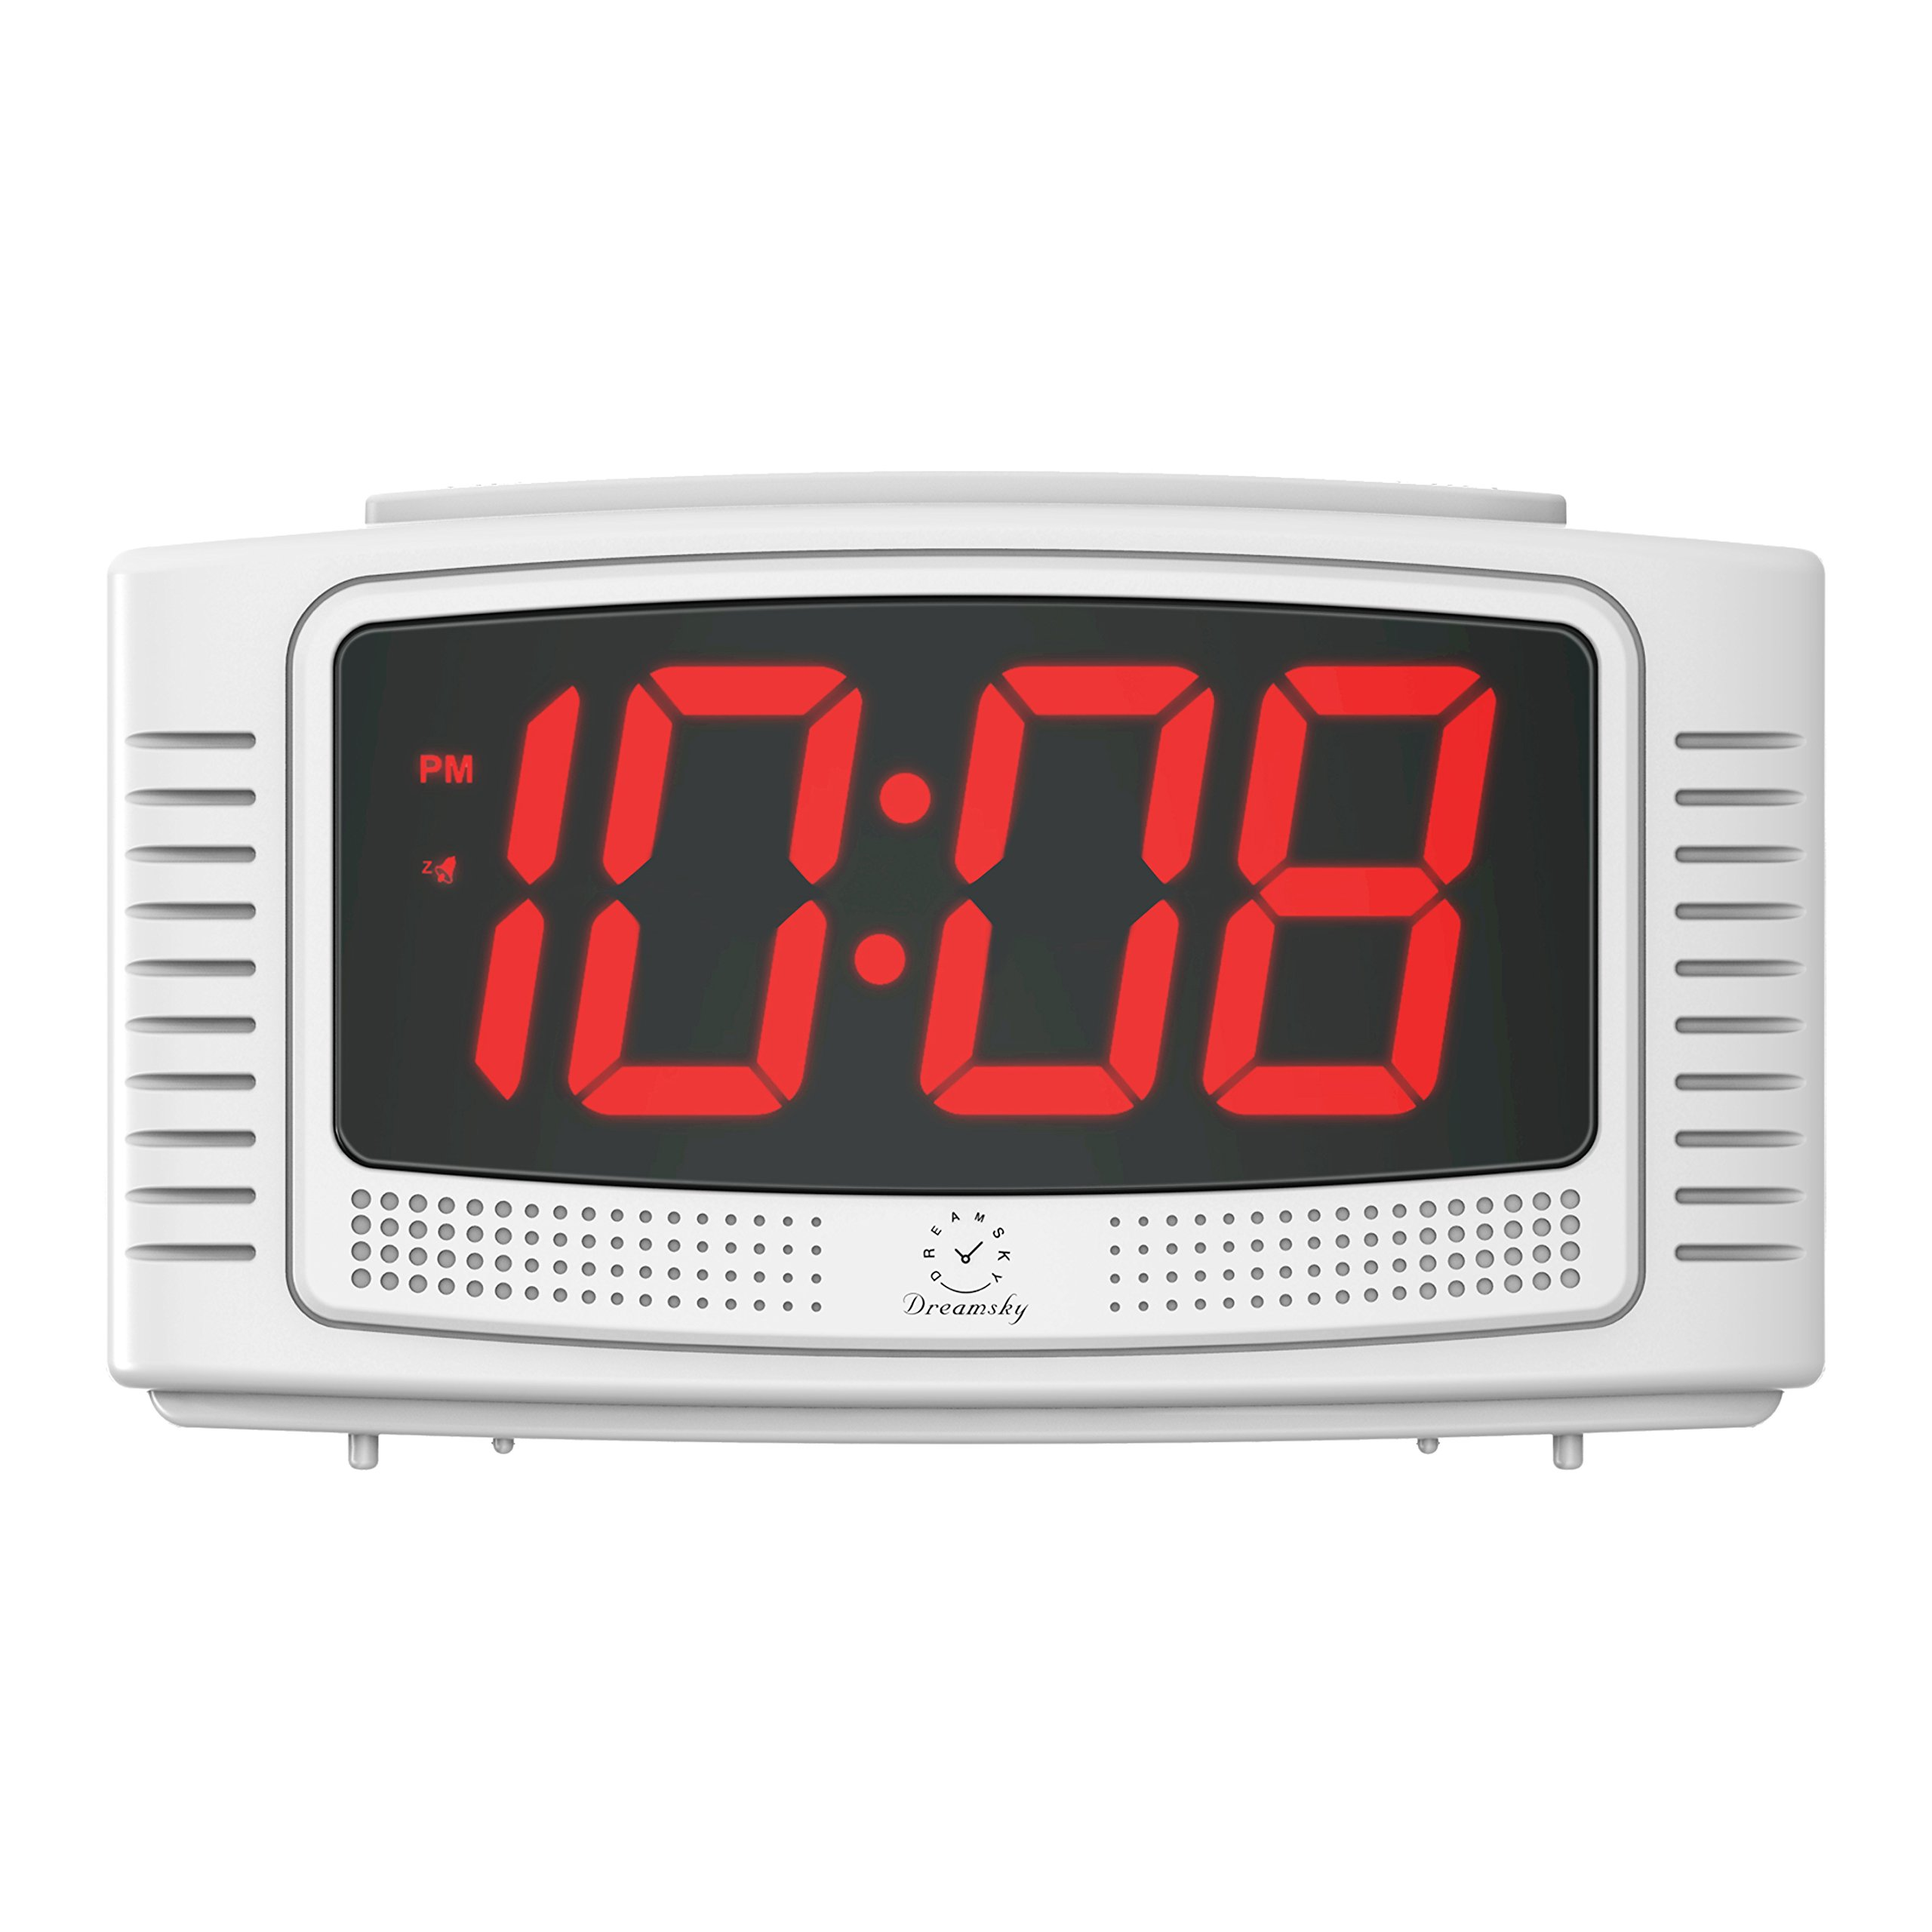 sainsburys led digital alarm clock radio instructions